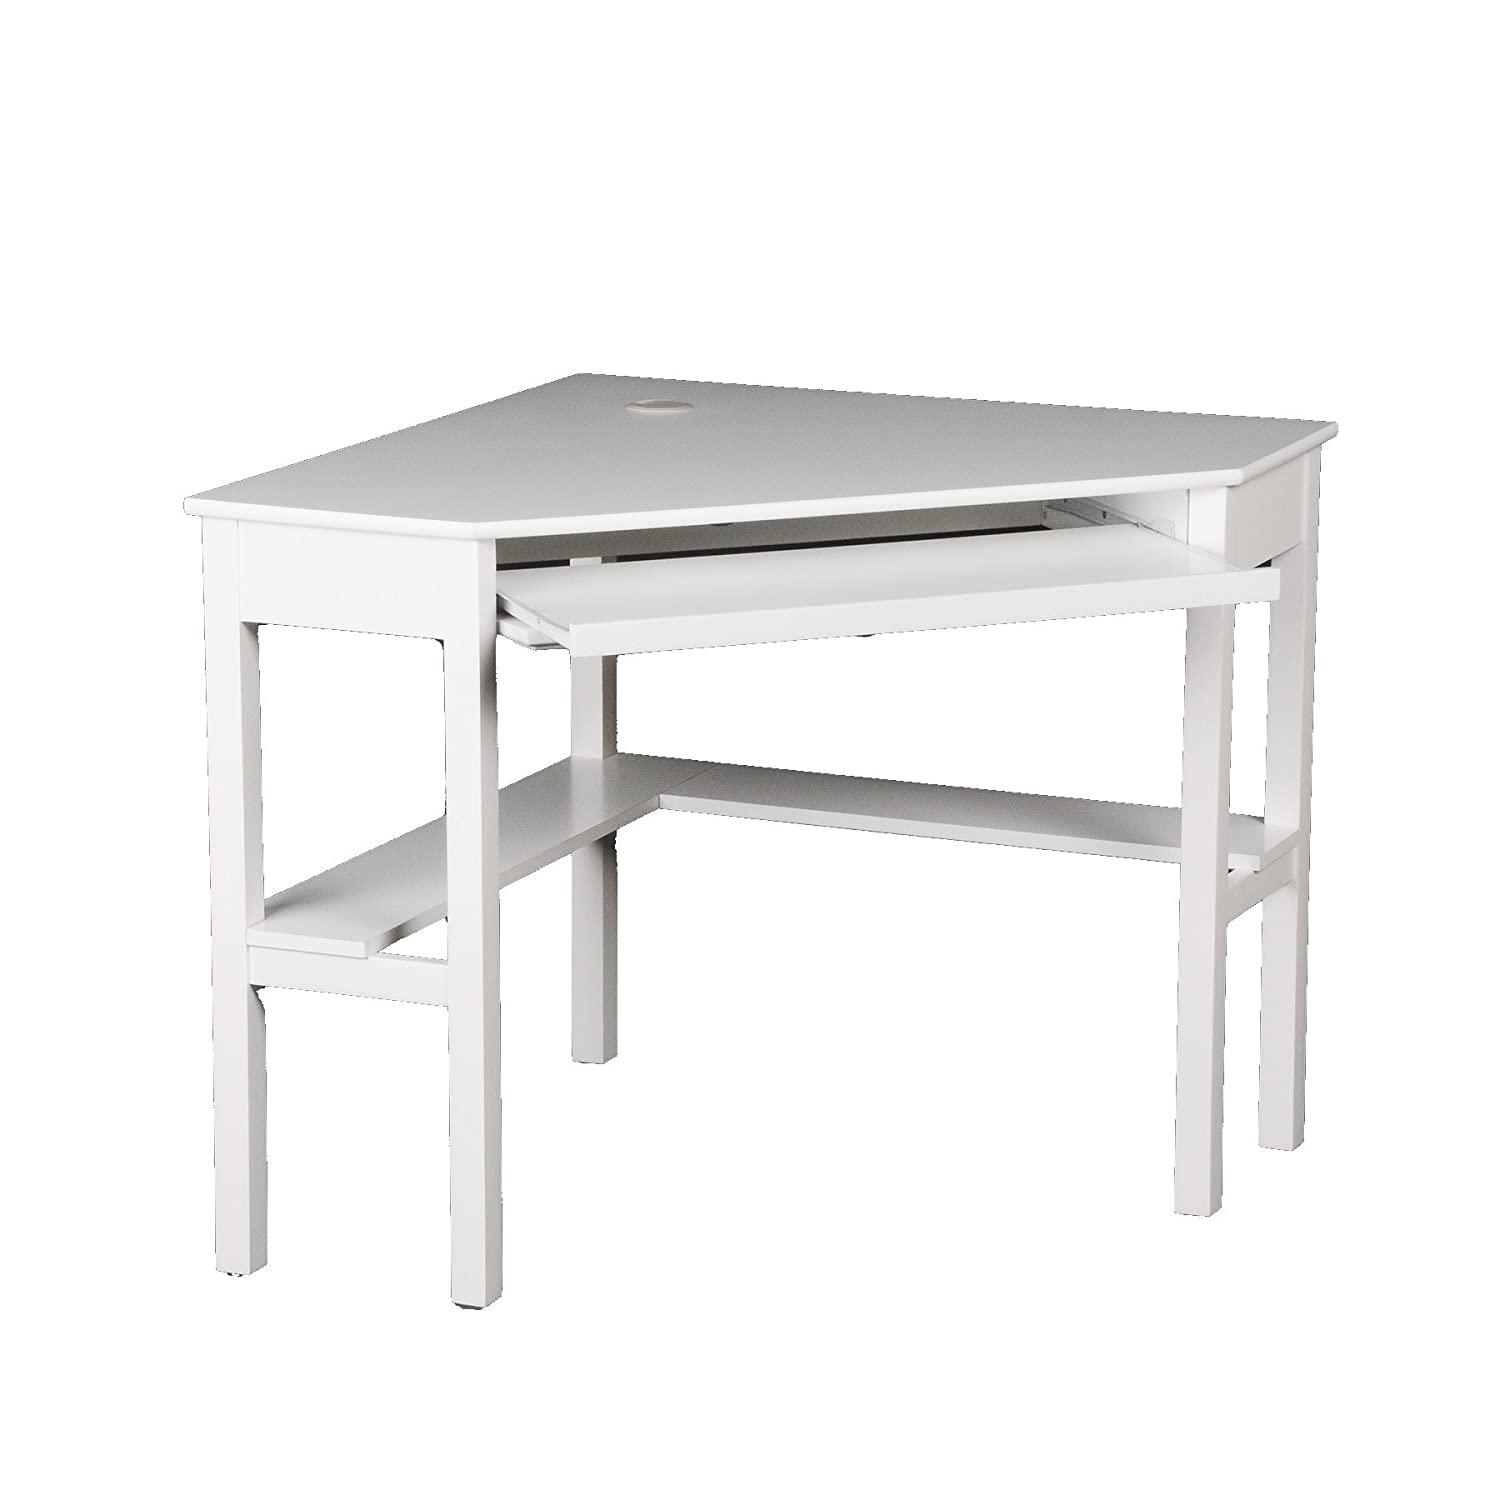 white office corner desk. Southern Enterprises Home Office Corner Computer Desk With Retractable Keyboard, Chic White: Amazon.co.uk: Kitchen \u0026 White